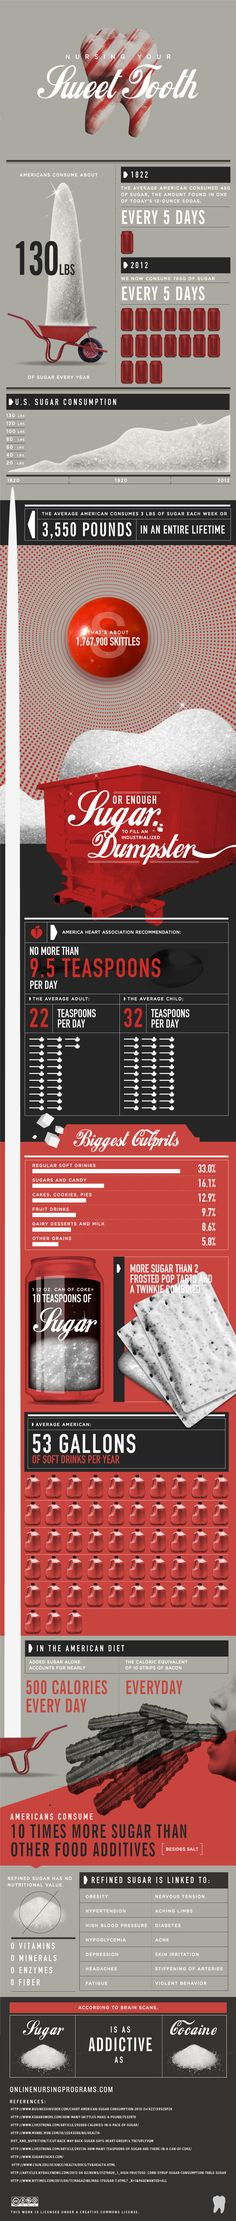 The average American consumes 3,550 pounds of sugar in an entire lifetime! See more shocking stats in this sugar infographic.